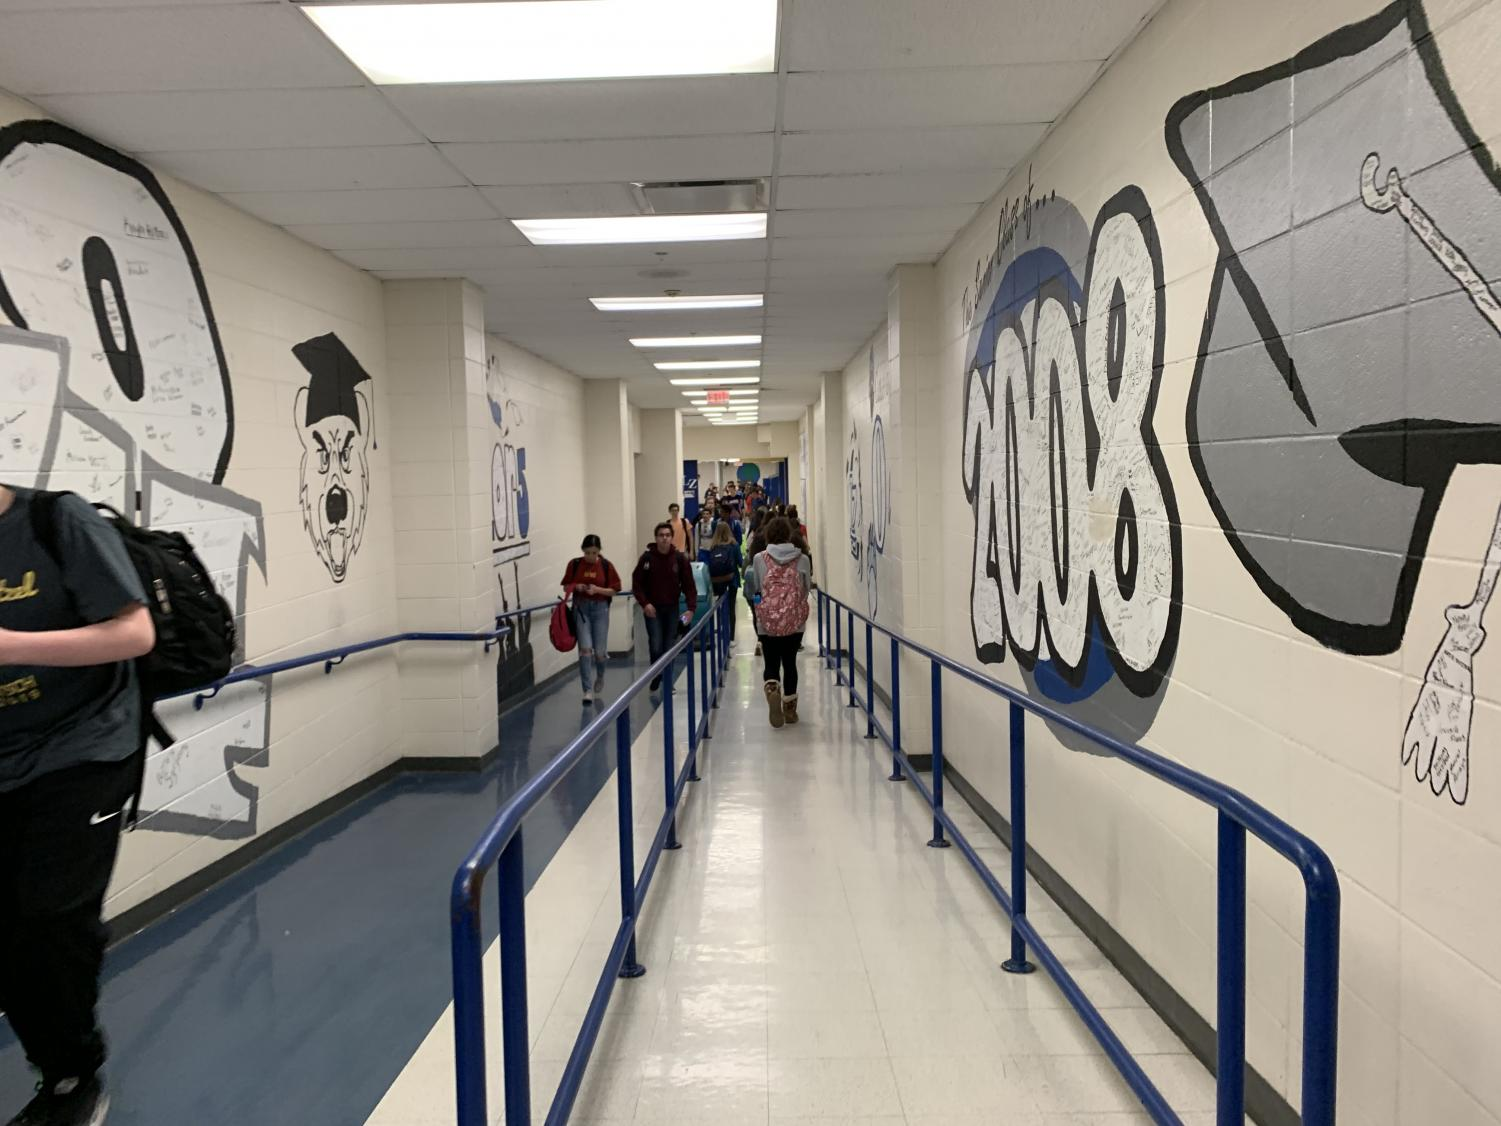 Students walk through the hallways of murals with signatures of past seniors. Kelly Bush, Senior, sudjects that if the school gives students prodjects to decorate a certain area of the school, this could show representation and liven up the walls of the school.